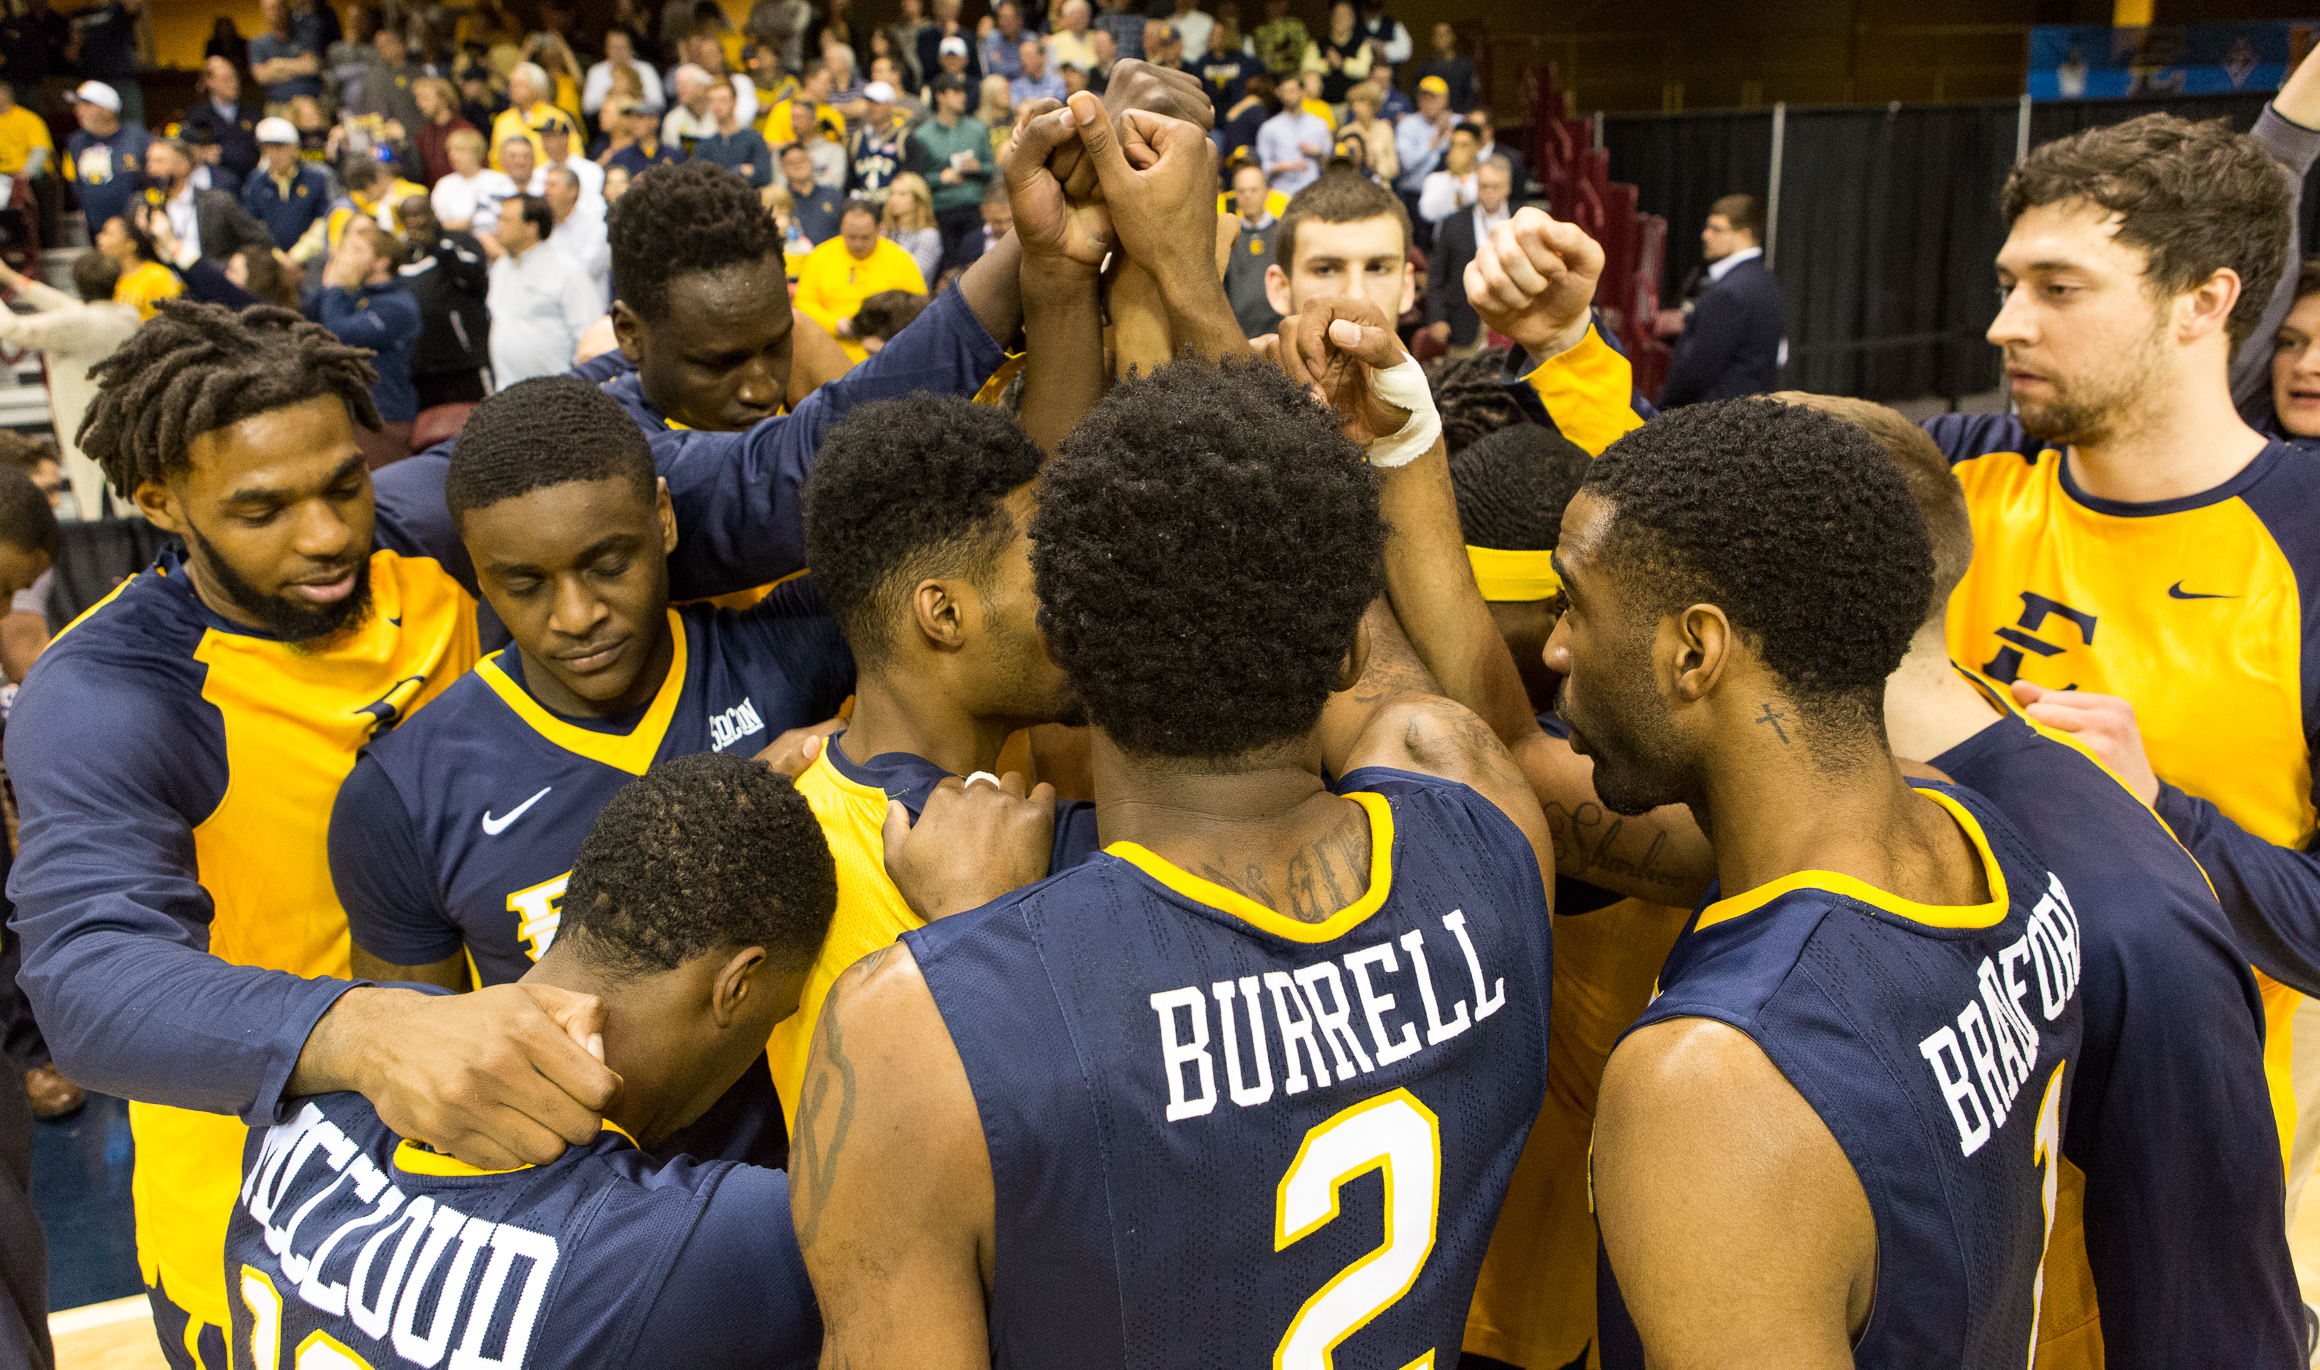 Bucs unable to best UNCG; fall in SoCon final, 62-47